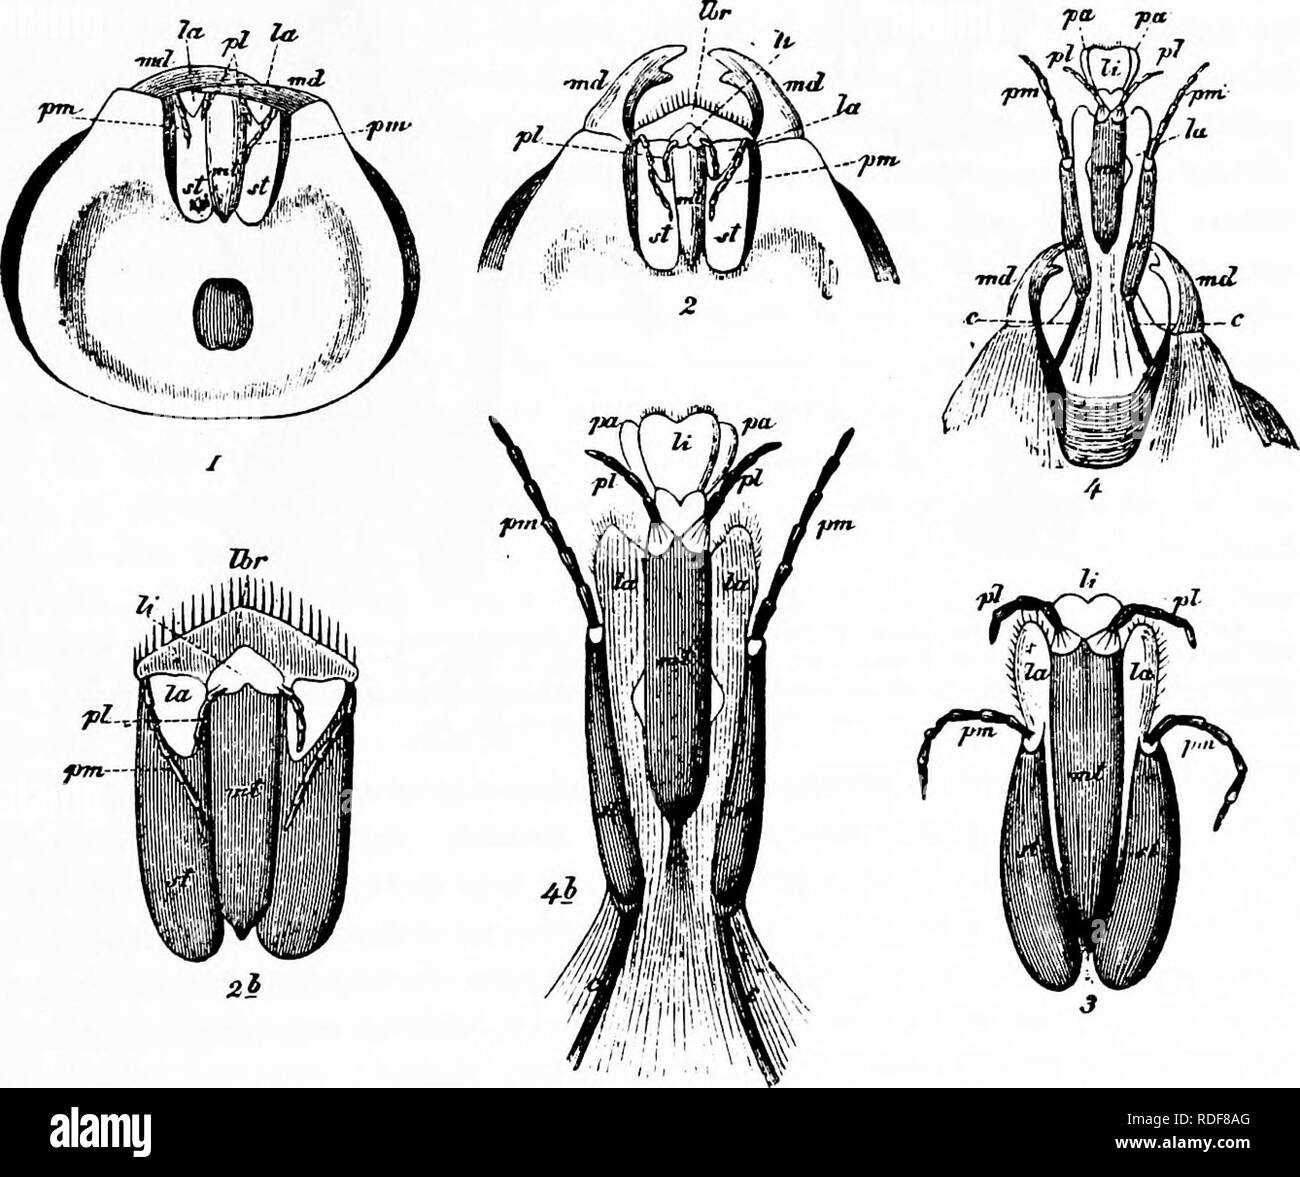 . Handbook of flower pollination : based upon Hermann Mu?ller's work 'The fertilisation of flowers by insects' . Fertilization of plants. HYMENOPTERA—BEES 151 the maxillae (la), the maxillary palps {/«), and the labial palps (/>/) are also turned downwards and backwards, and the mandibles (md) are brought together over the bases of these parts, at the same time overlapping the downwardly folded labrum (Fig. 64, 2, Ibr) and the retracted ligula {It). In the state of rest the mandibles alone retain their position unchanged, and are able, without alteration in the position of any other mouth-p Stock Photo